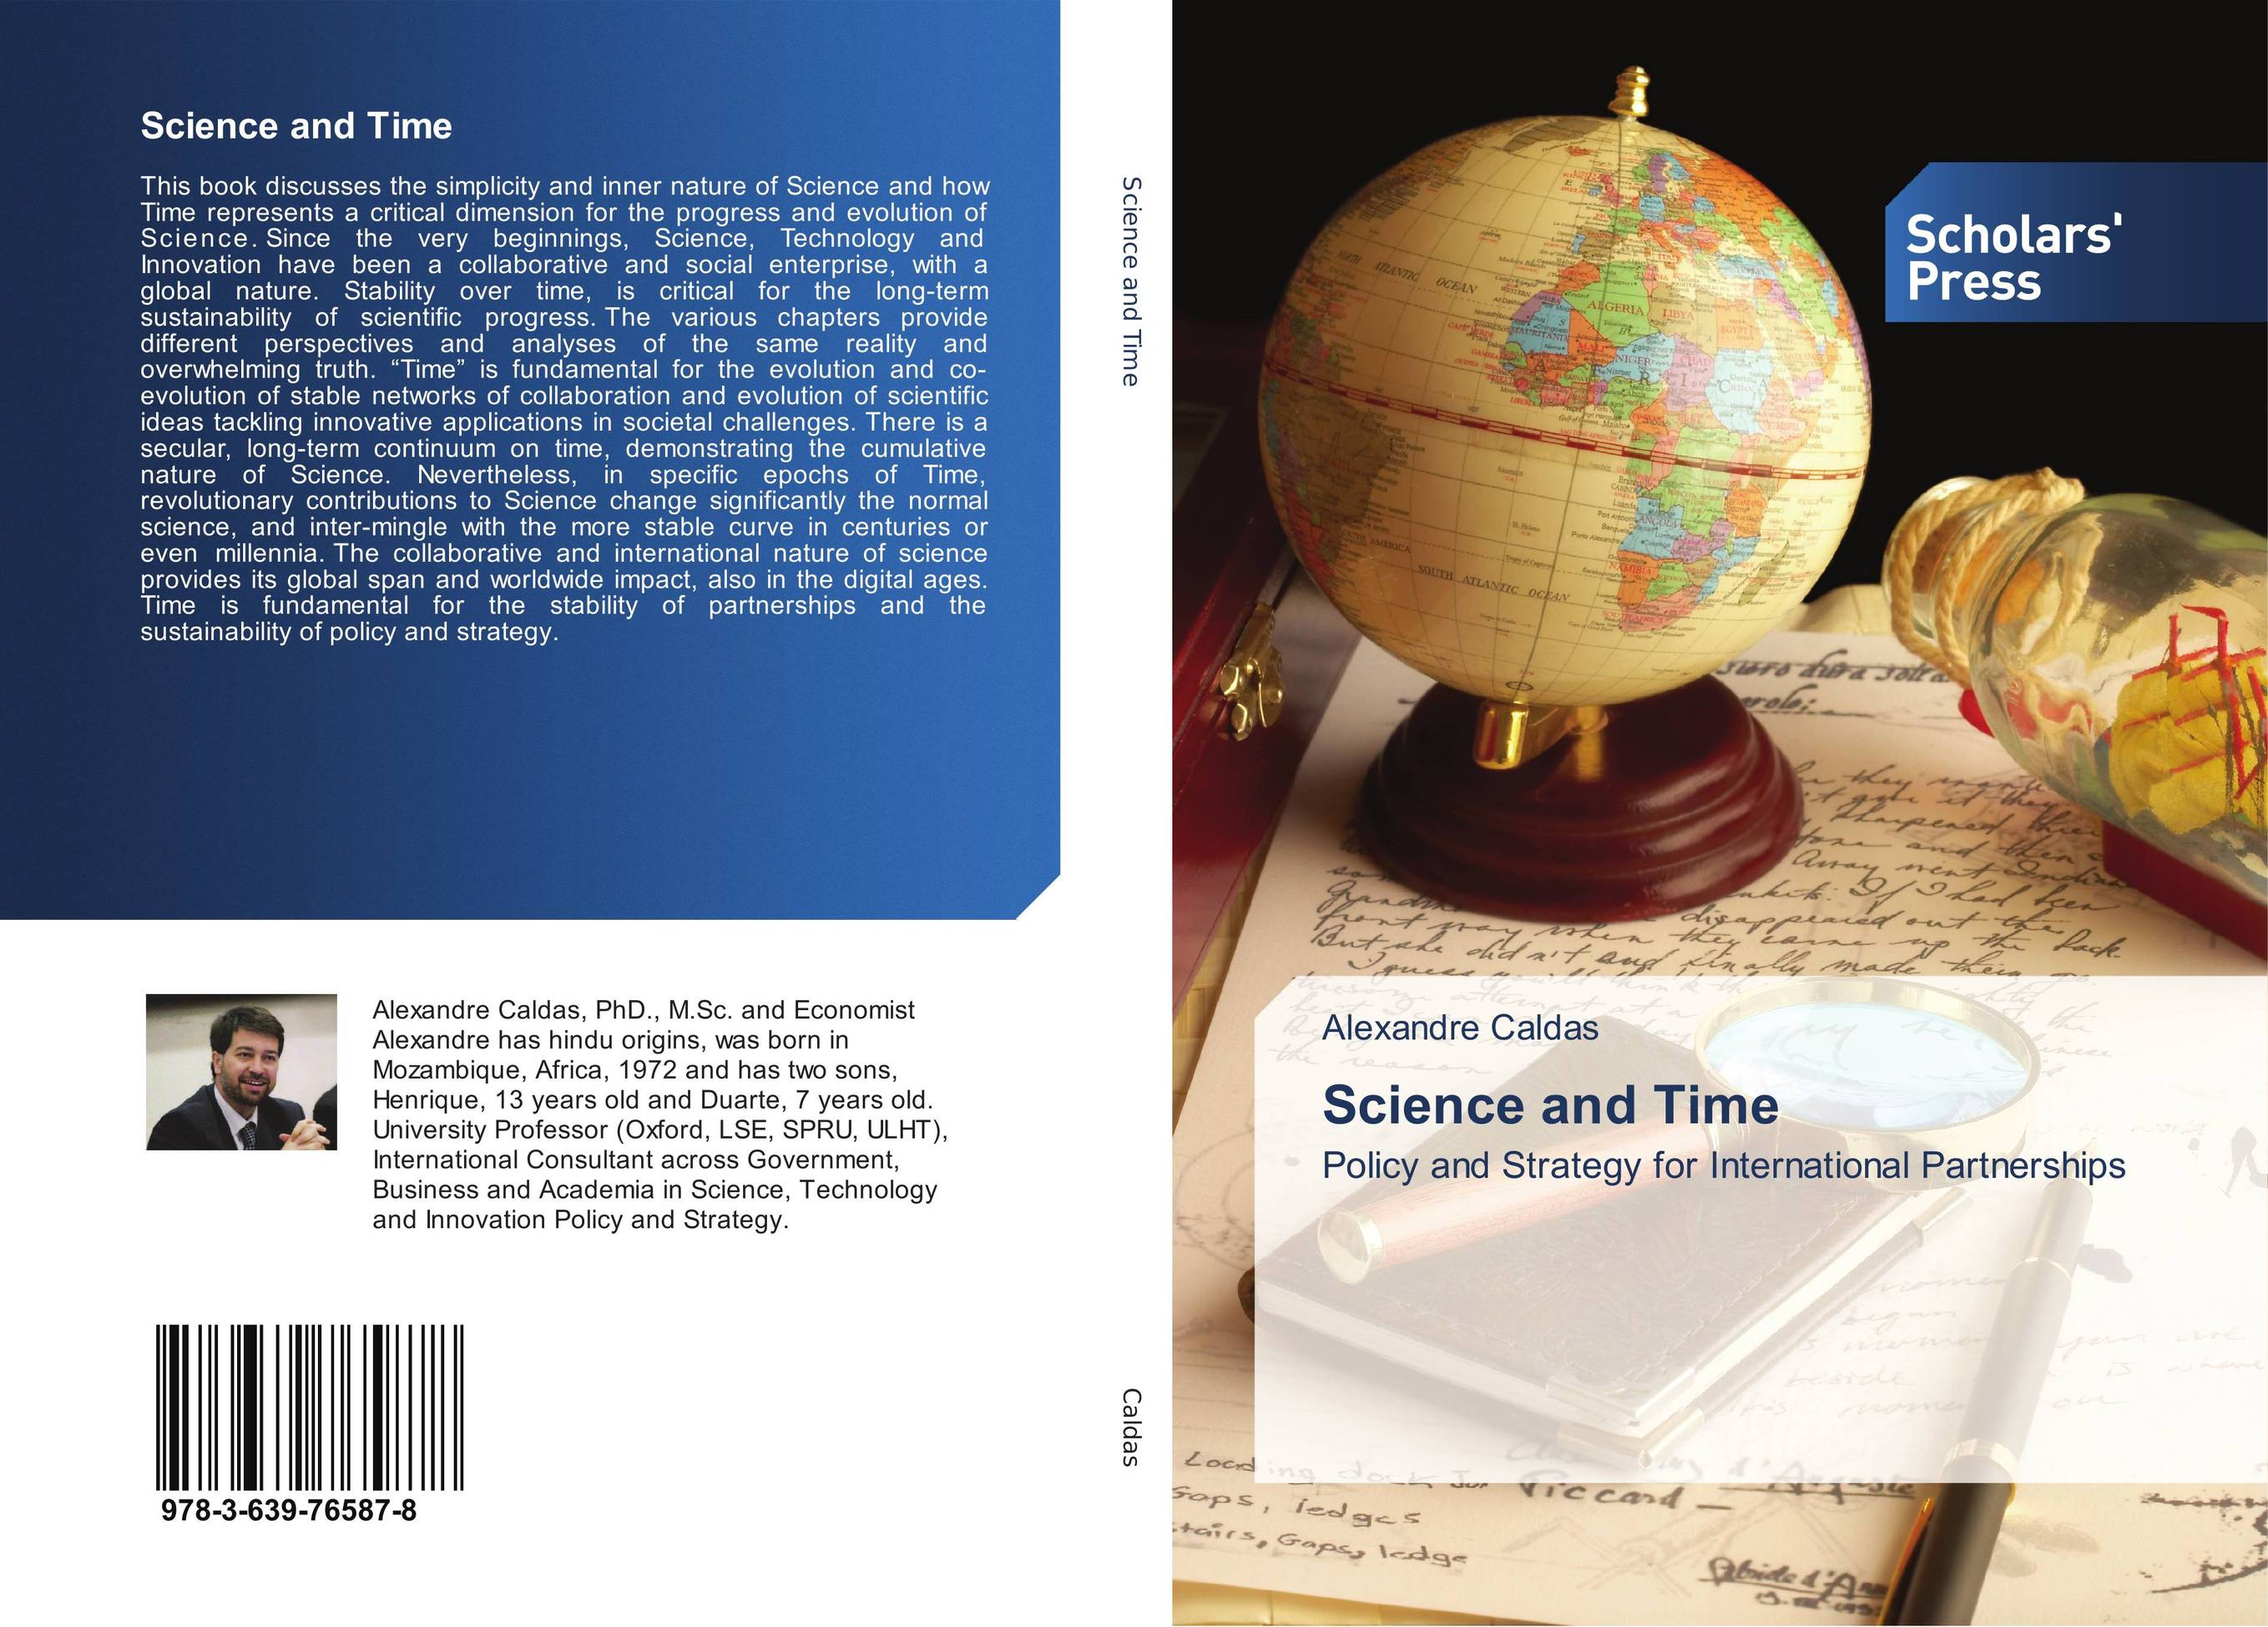 Science and Time сборник статей science and life proceedings of articles the international scientific conference czech republic karlovy vary – russia moscow 28–29 april 2016